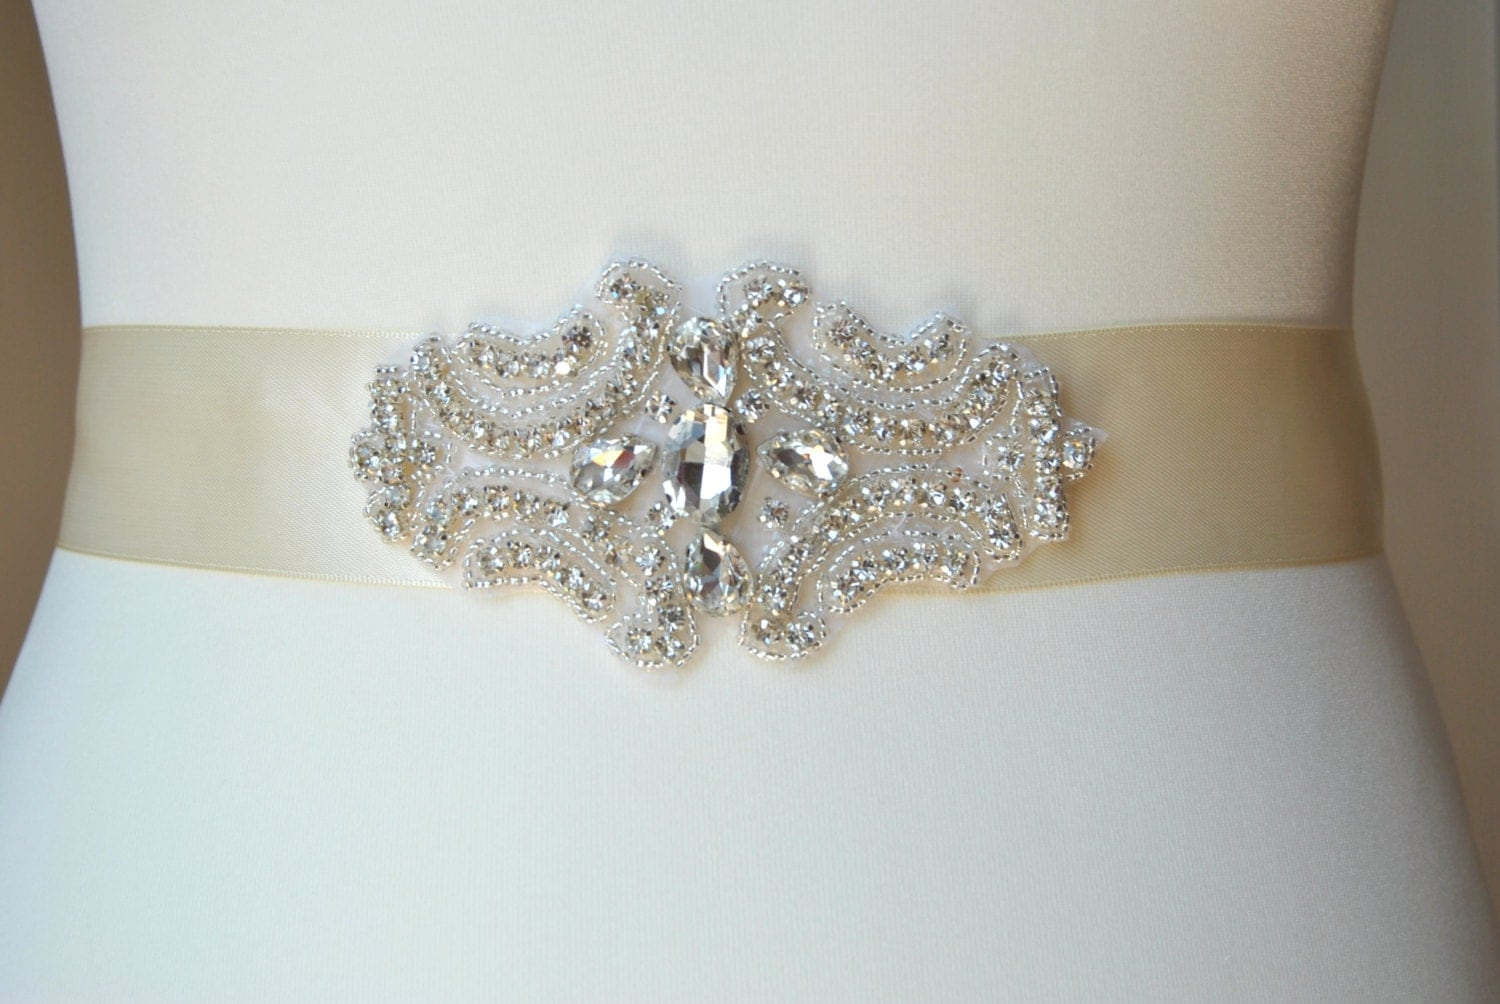 Bridal sashwedding dress sash belt rhinestone sash for Wedding dress sash with rhinestones